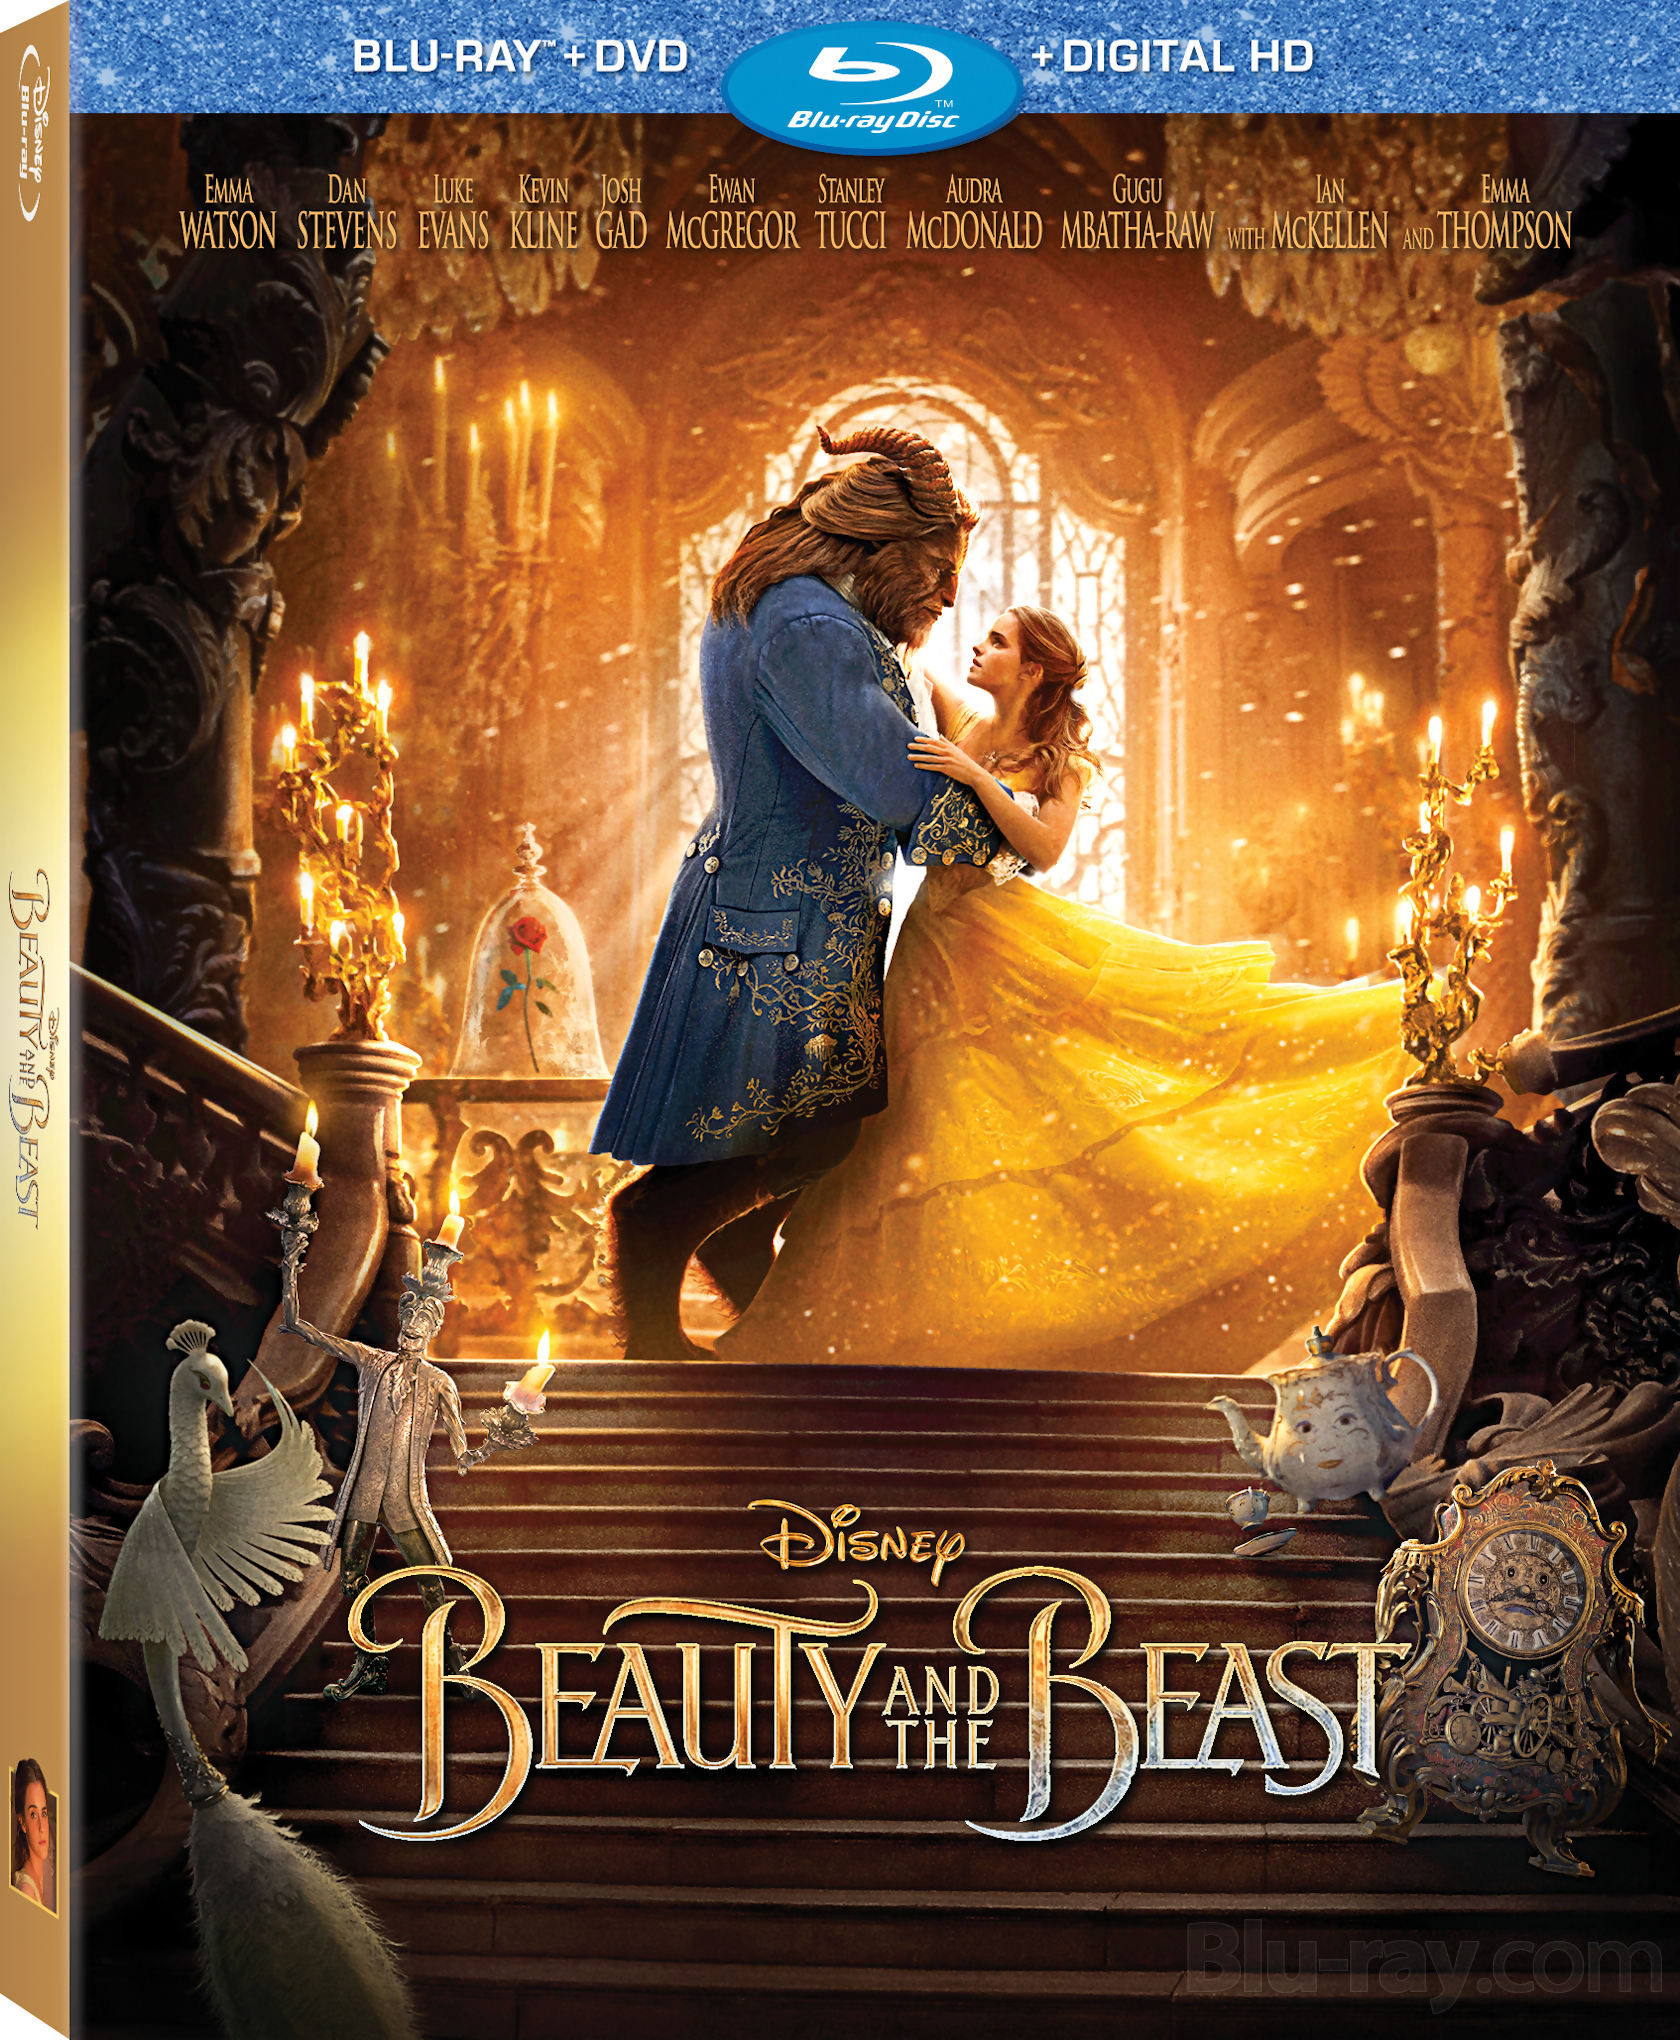 Amazons Choice for beauty and the beast blue raydvd…